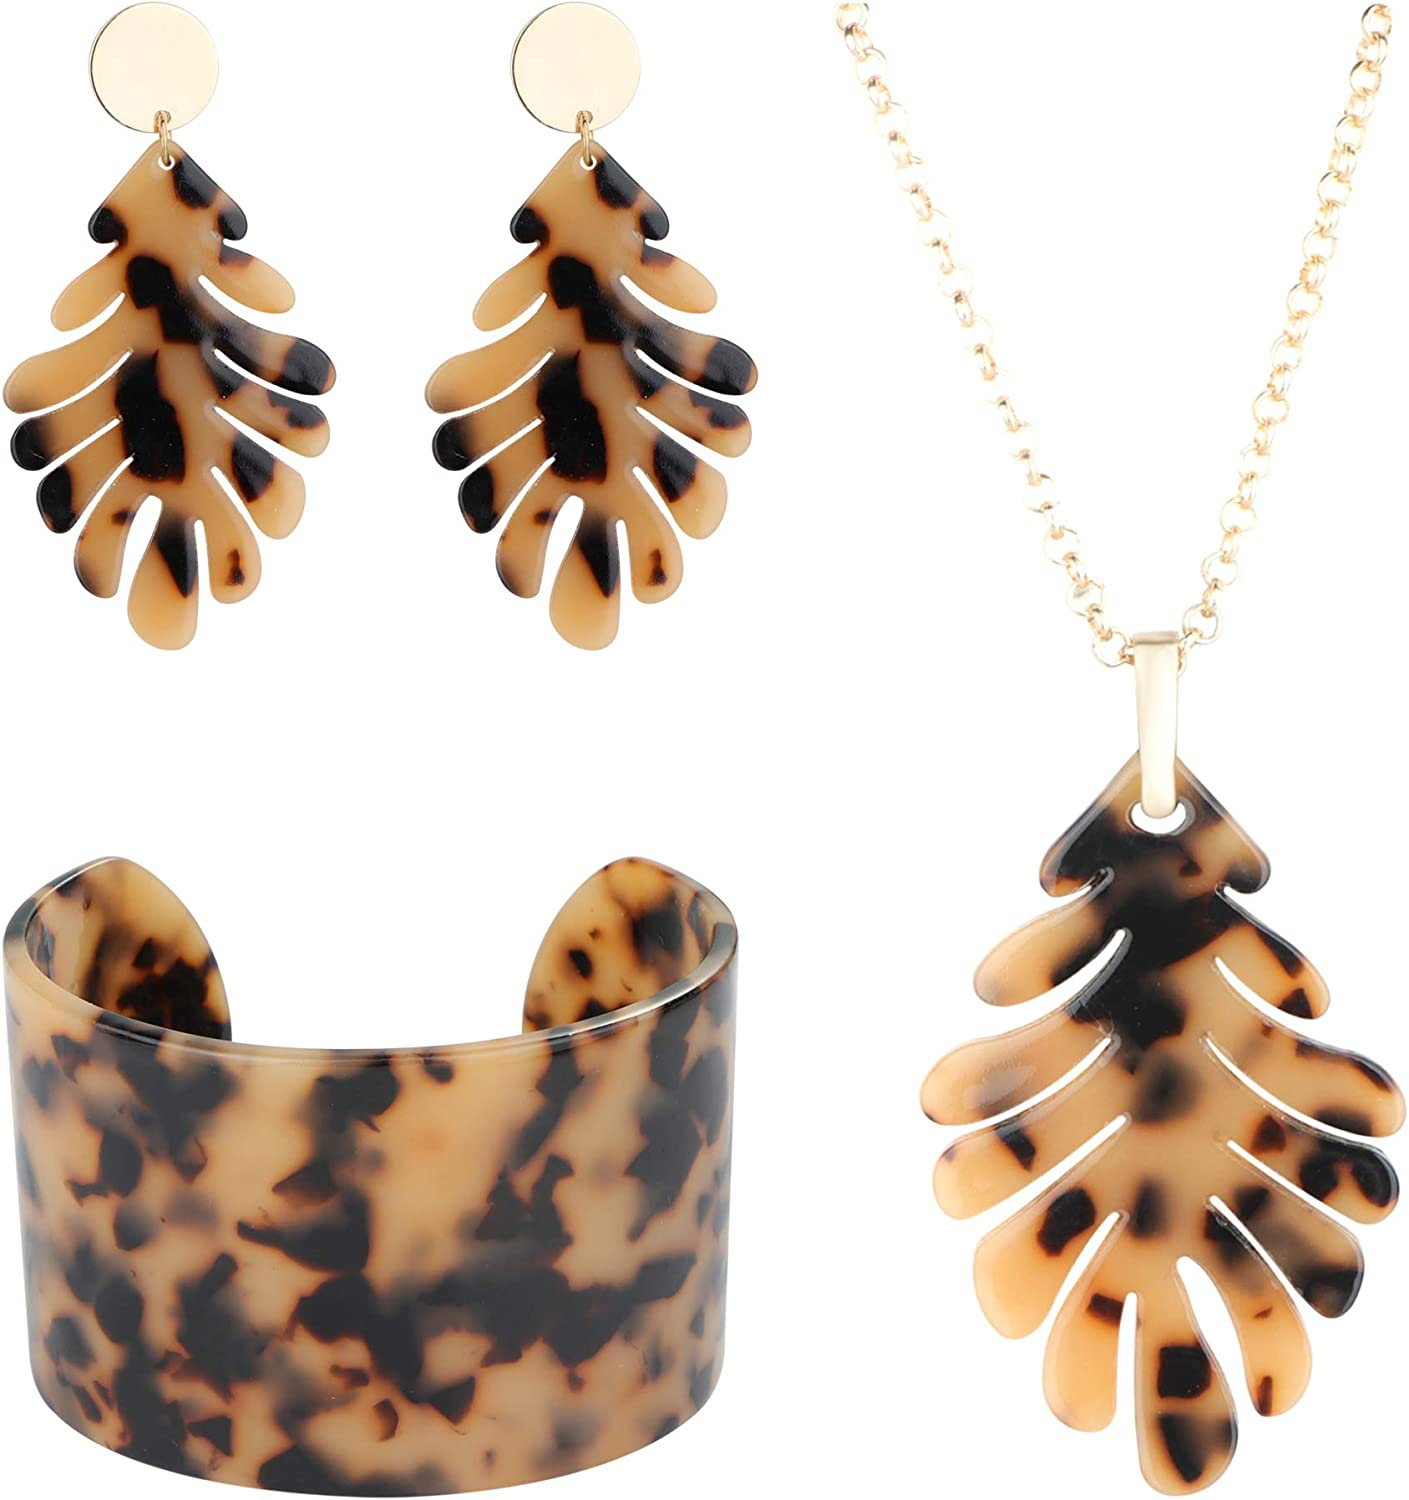 Free shipping anywhere in the nation ORAZIO Acrylic Necklace Bracelet Fresno Mall Earrings Women Statem for Resin